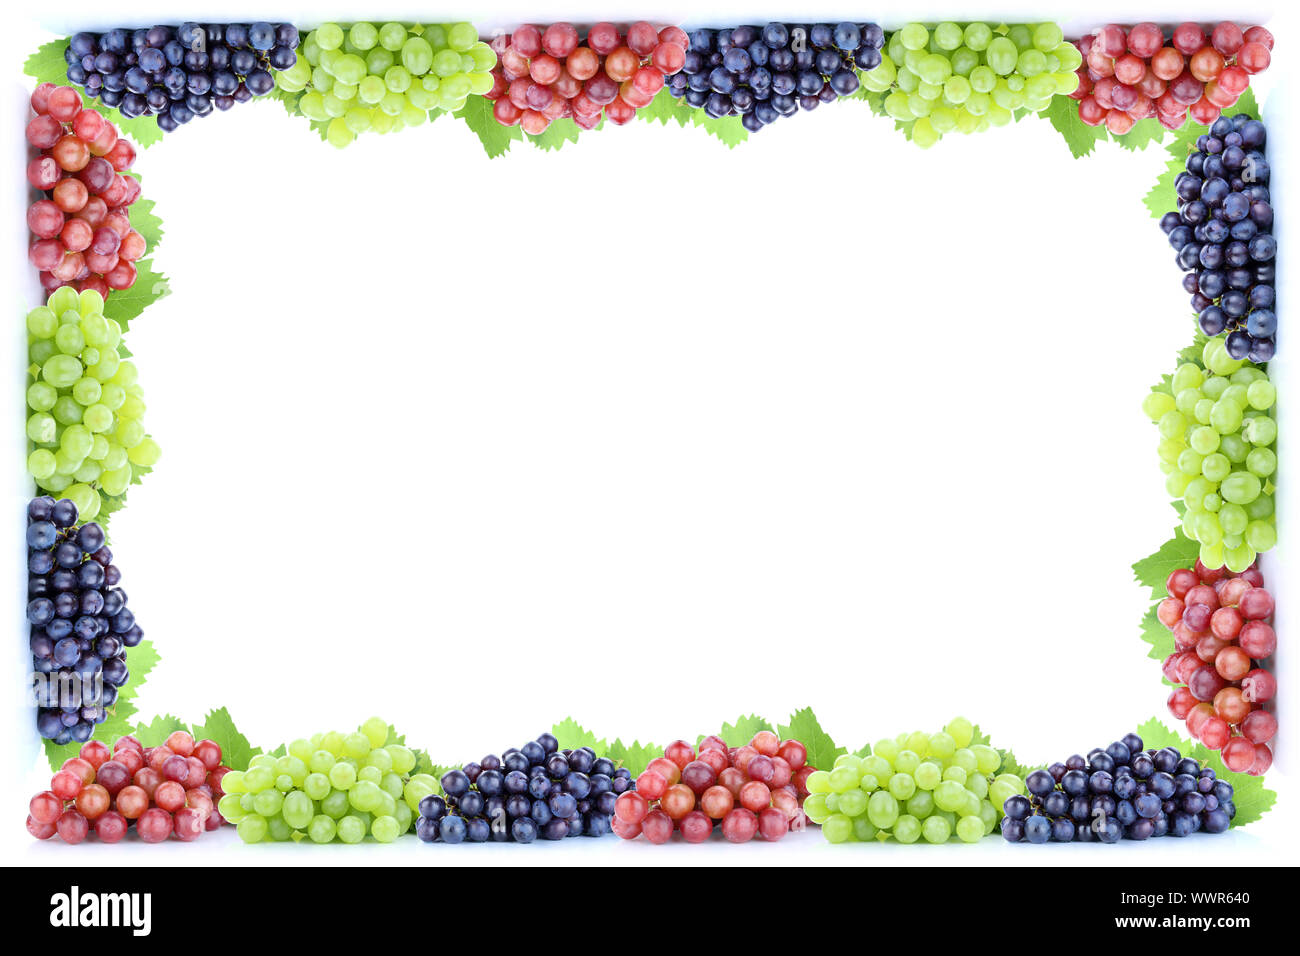 Grapes Grapes Grapes Fresh Fruits Fruit Frames Free Text Copyspace